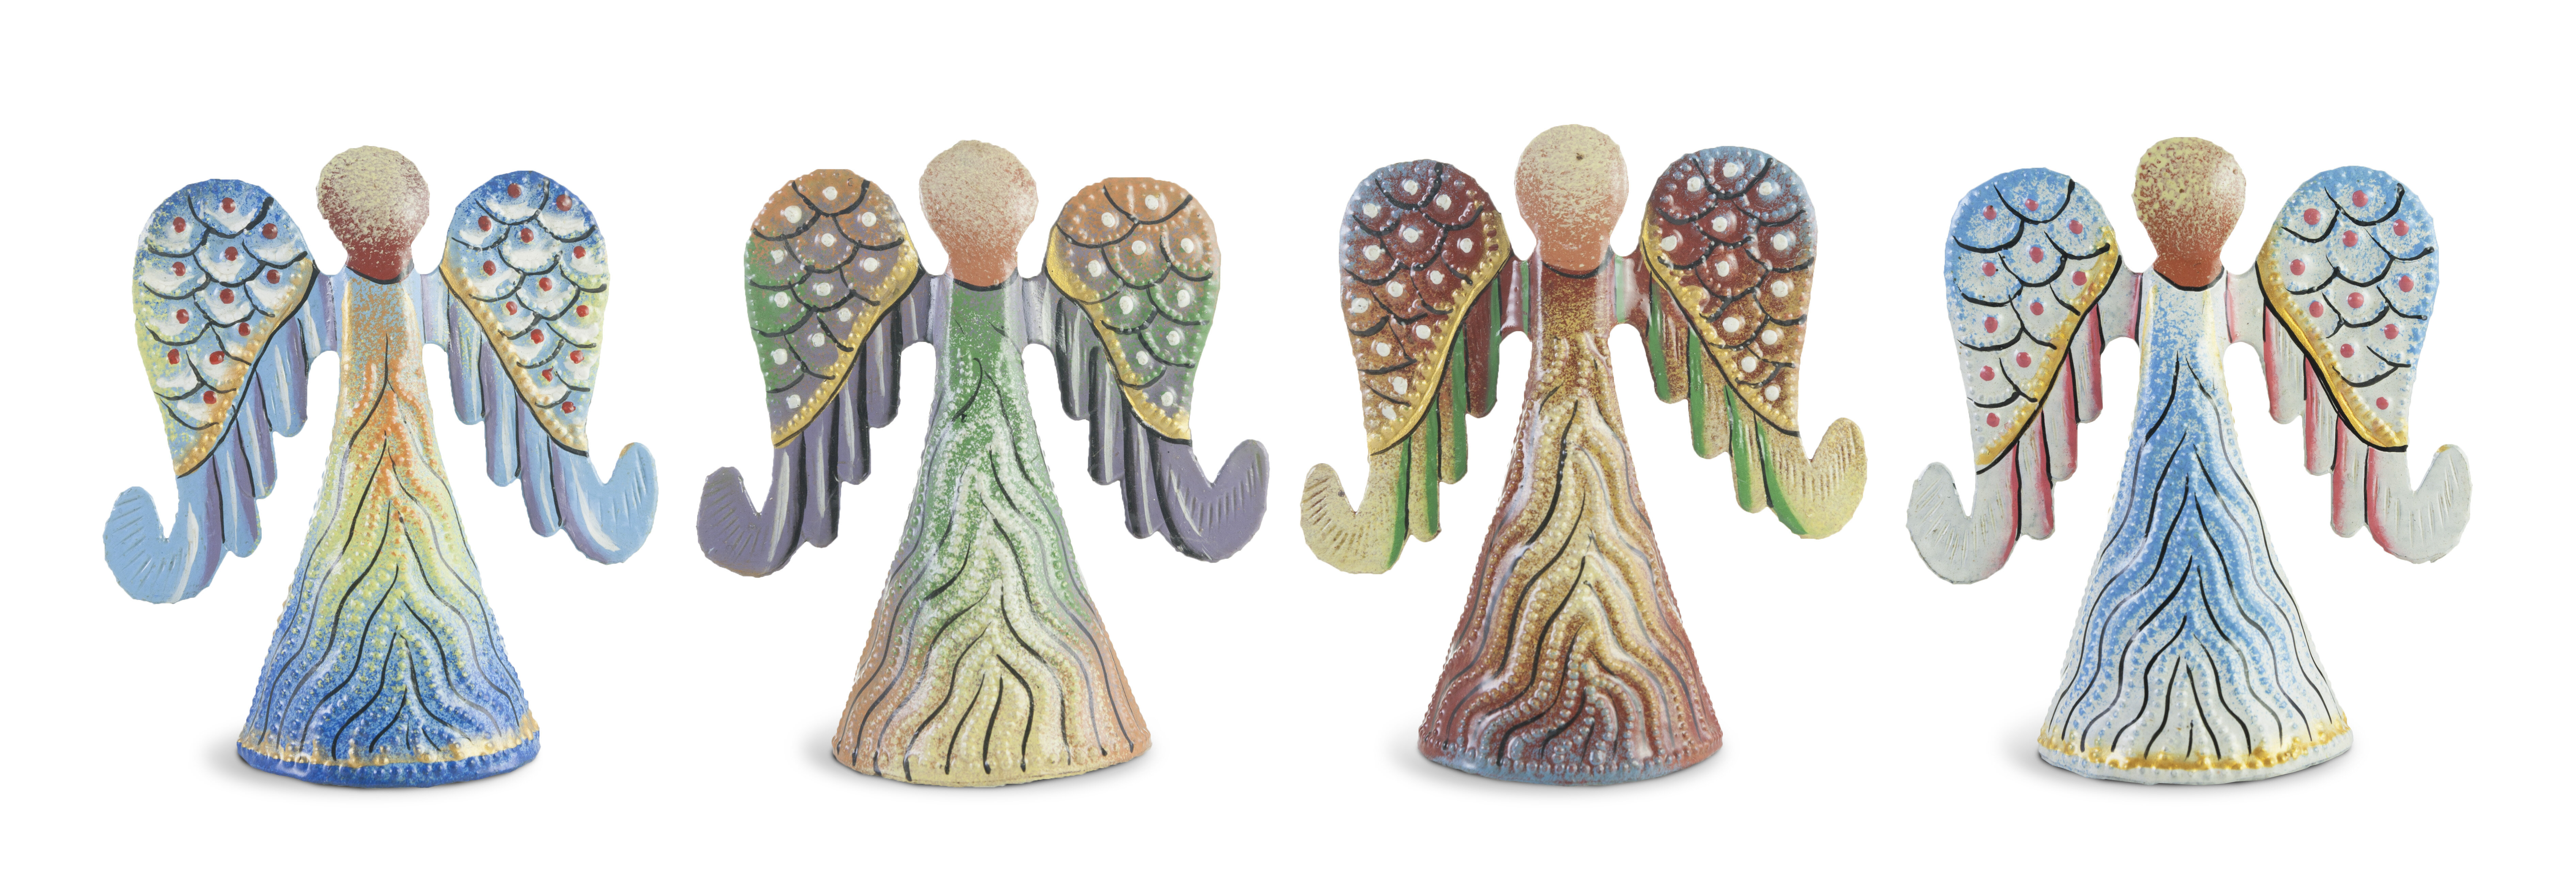 Winston Porter 4 Piece Painted Angel With Curled Wing Sculpture Set Wayfair